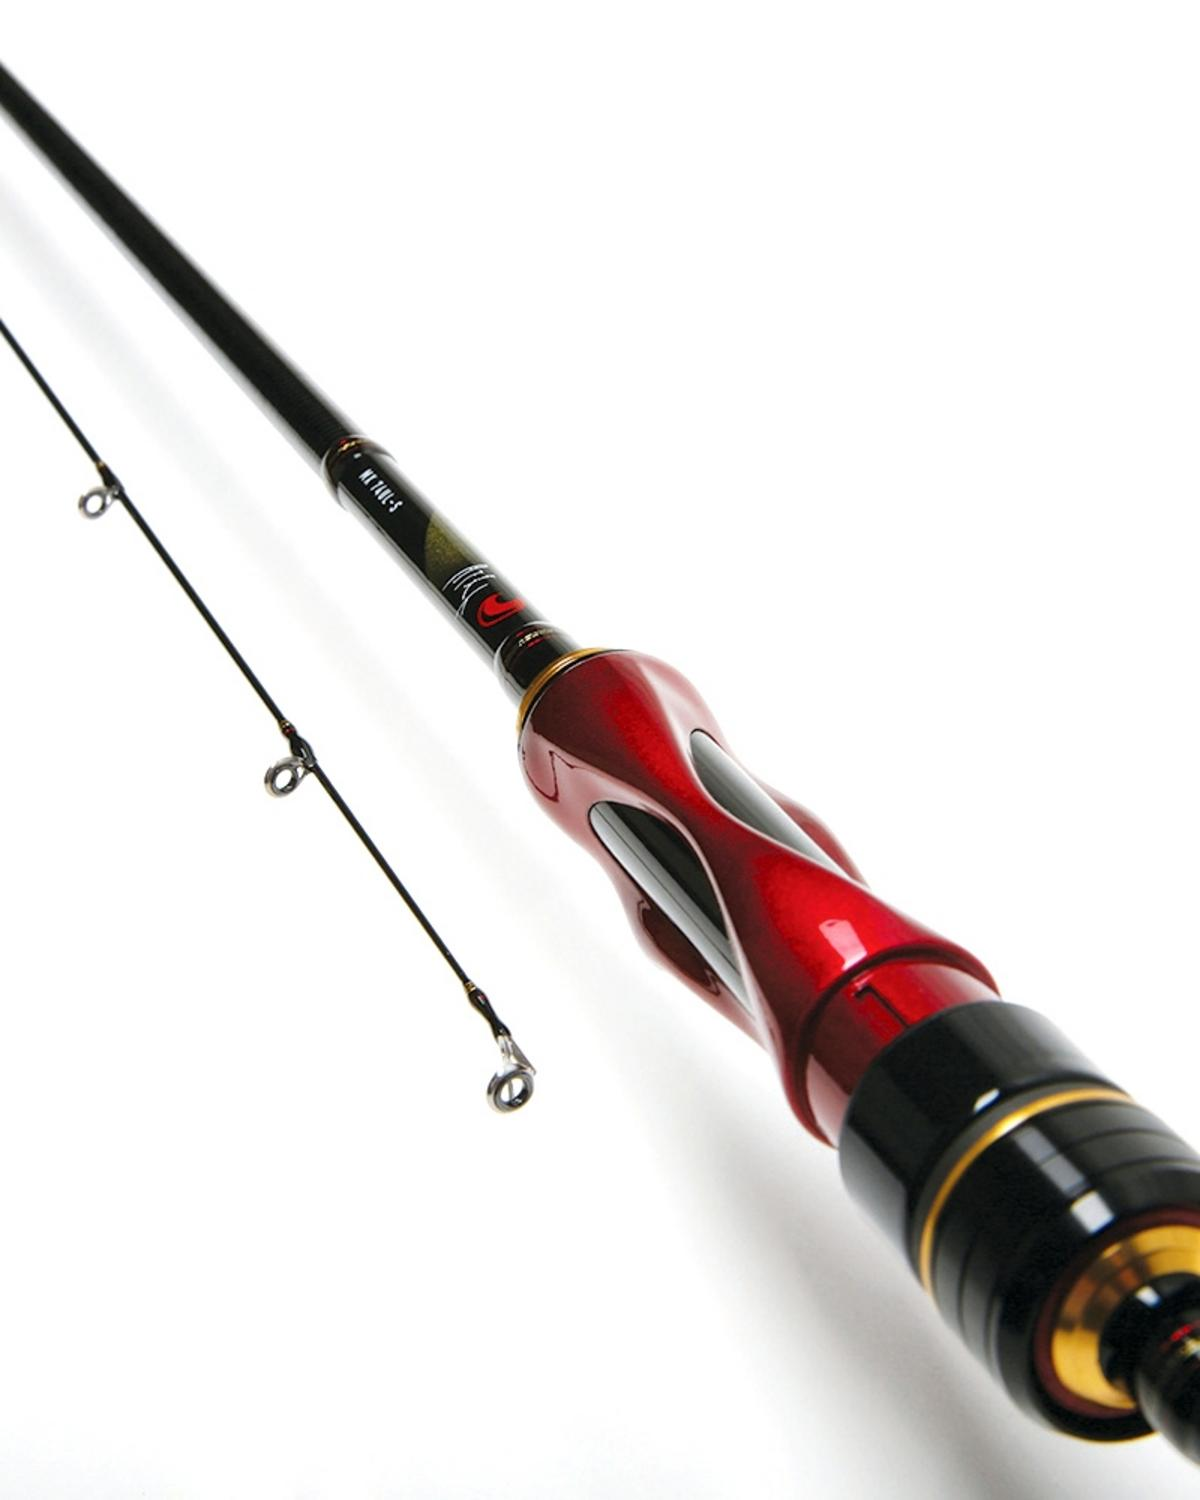 DAIWA GEKKABIJIN MX LRF FISHING ROD 7'4' 2PC 0.5-5 GR  GKMX74UL-S-K